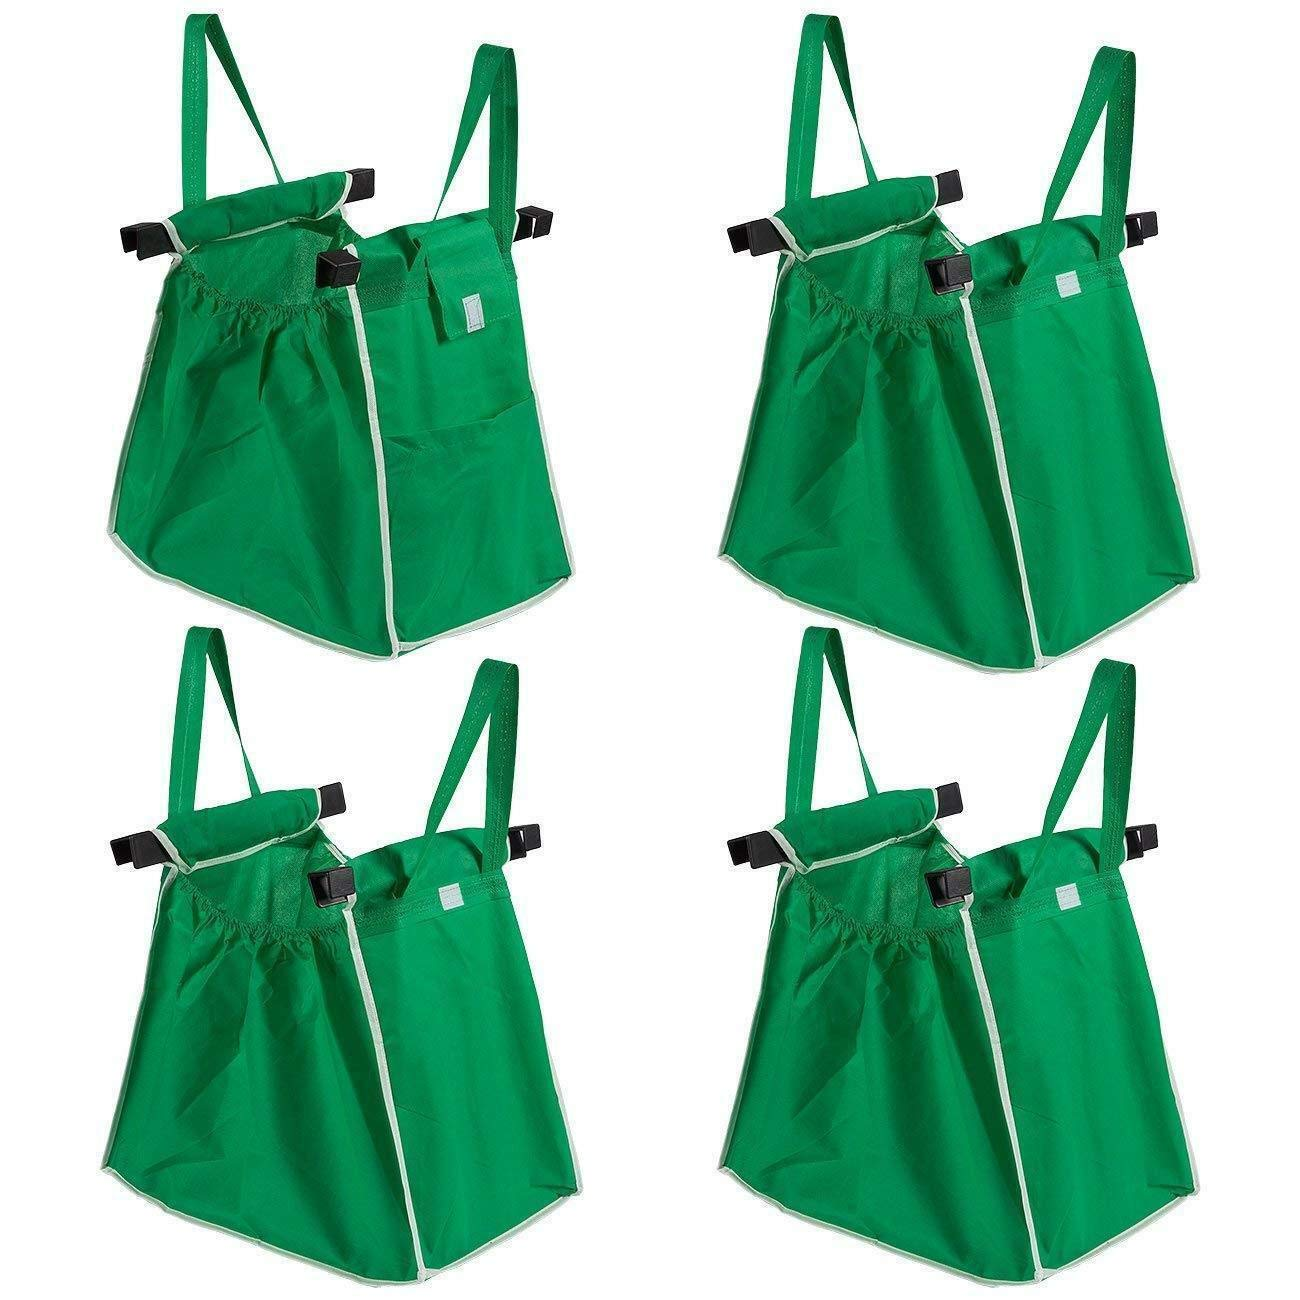 Lovely999 New 4 pcs Grocery Shopping Bag Foldable Tote Eco-Friendly Reusable Carrier Bags 2 Adjustable Strong Straps for Heavy Duty.Allowing Shoppers to Feel Smart and Confident.